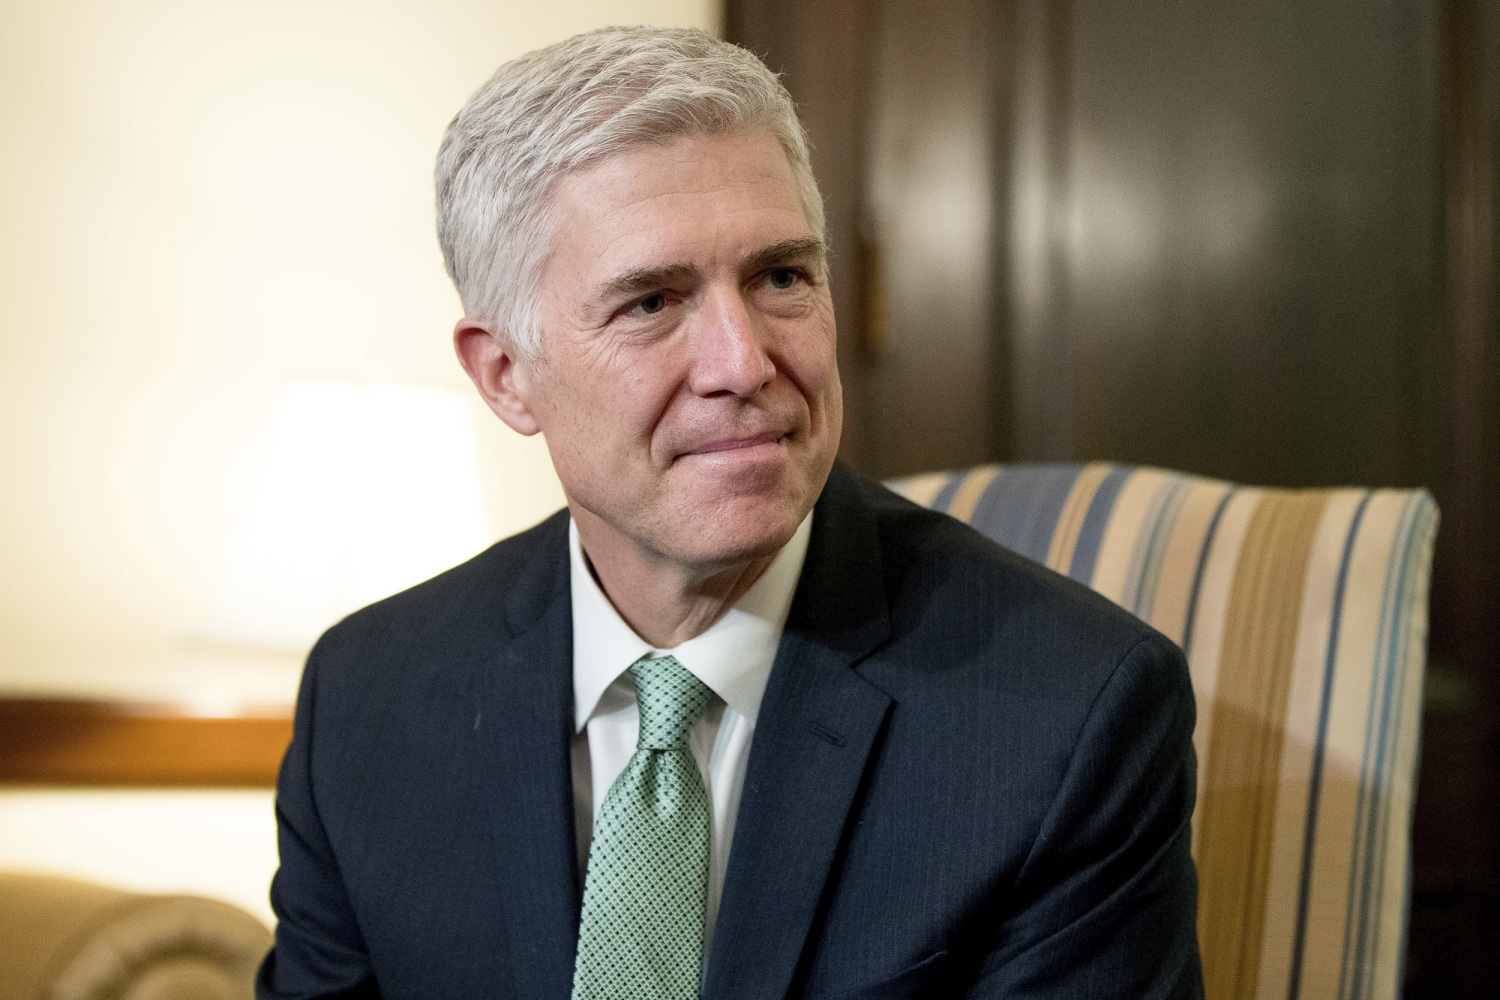 Don't stop the presses: Schumer a 'no' on Gorsuch